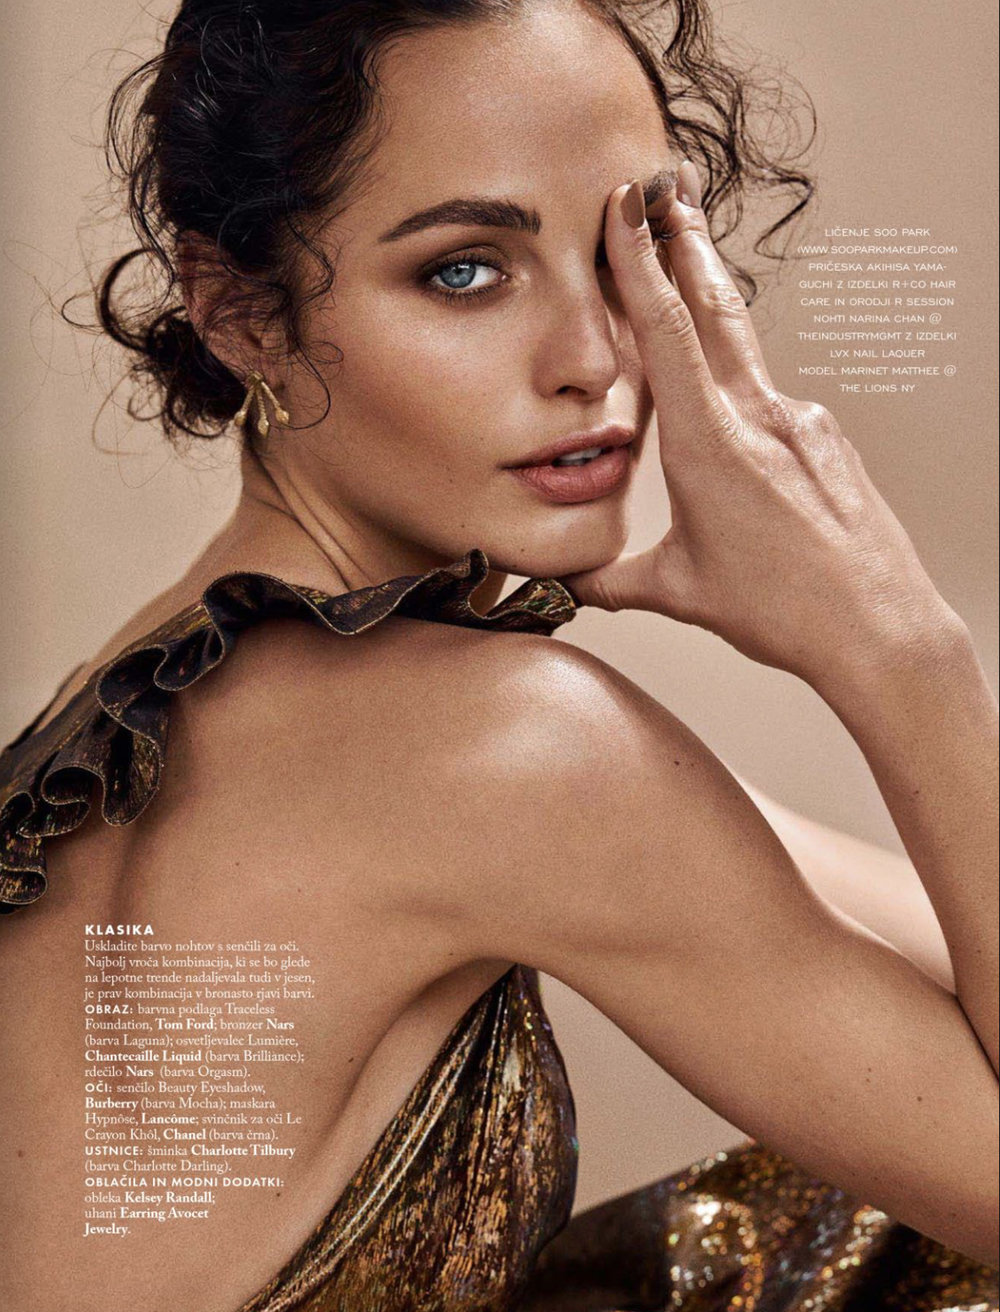 Copy of elle slovenia july cover story beauty issue special featuring kelsey randall gold holographic ruffle shoulder angel gown